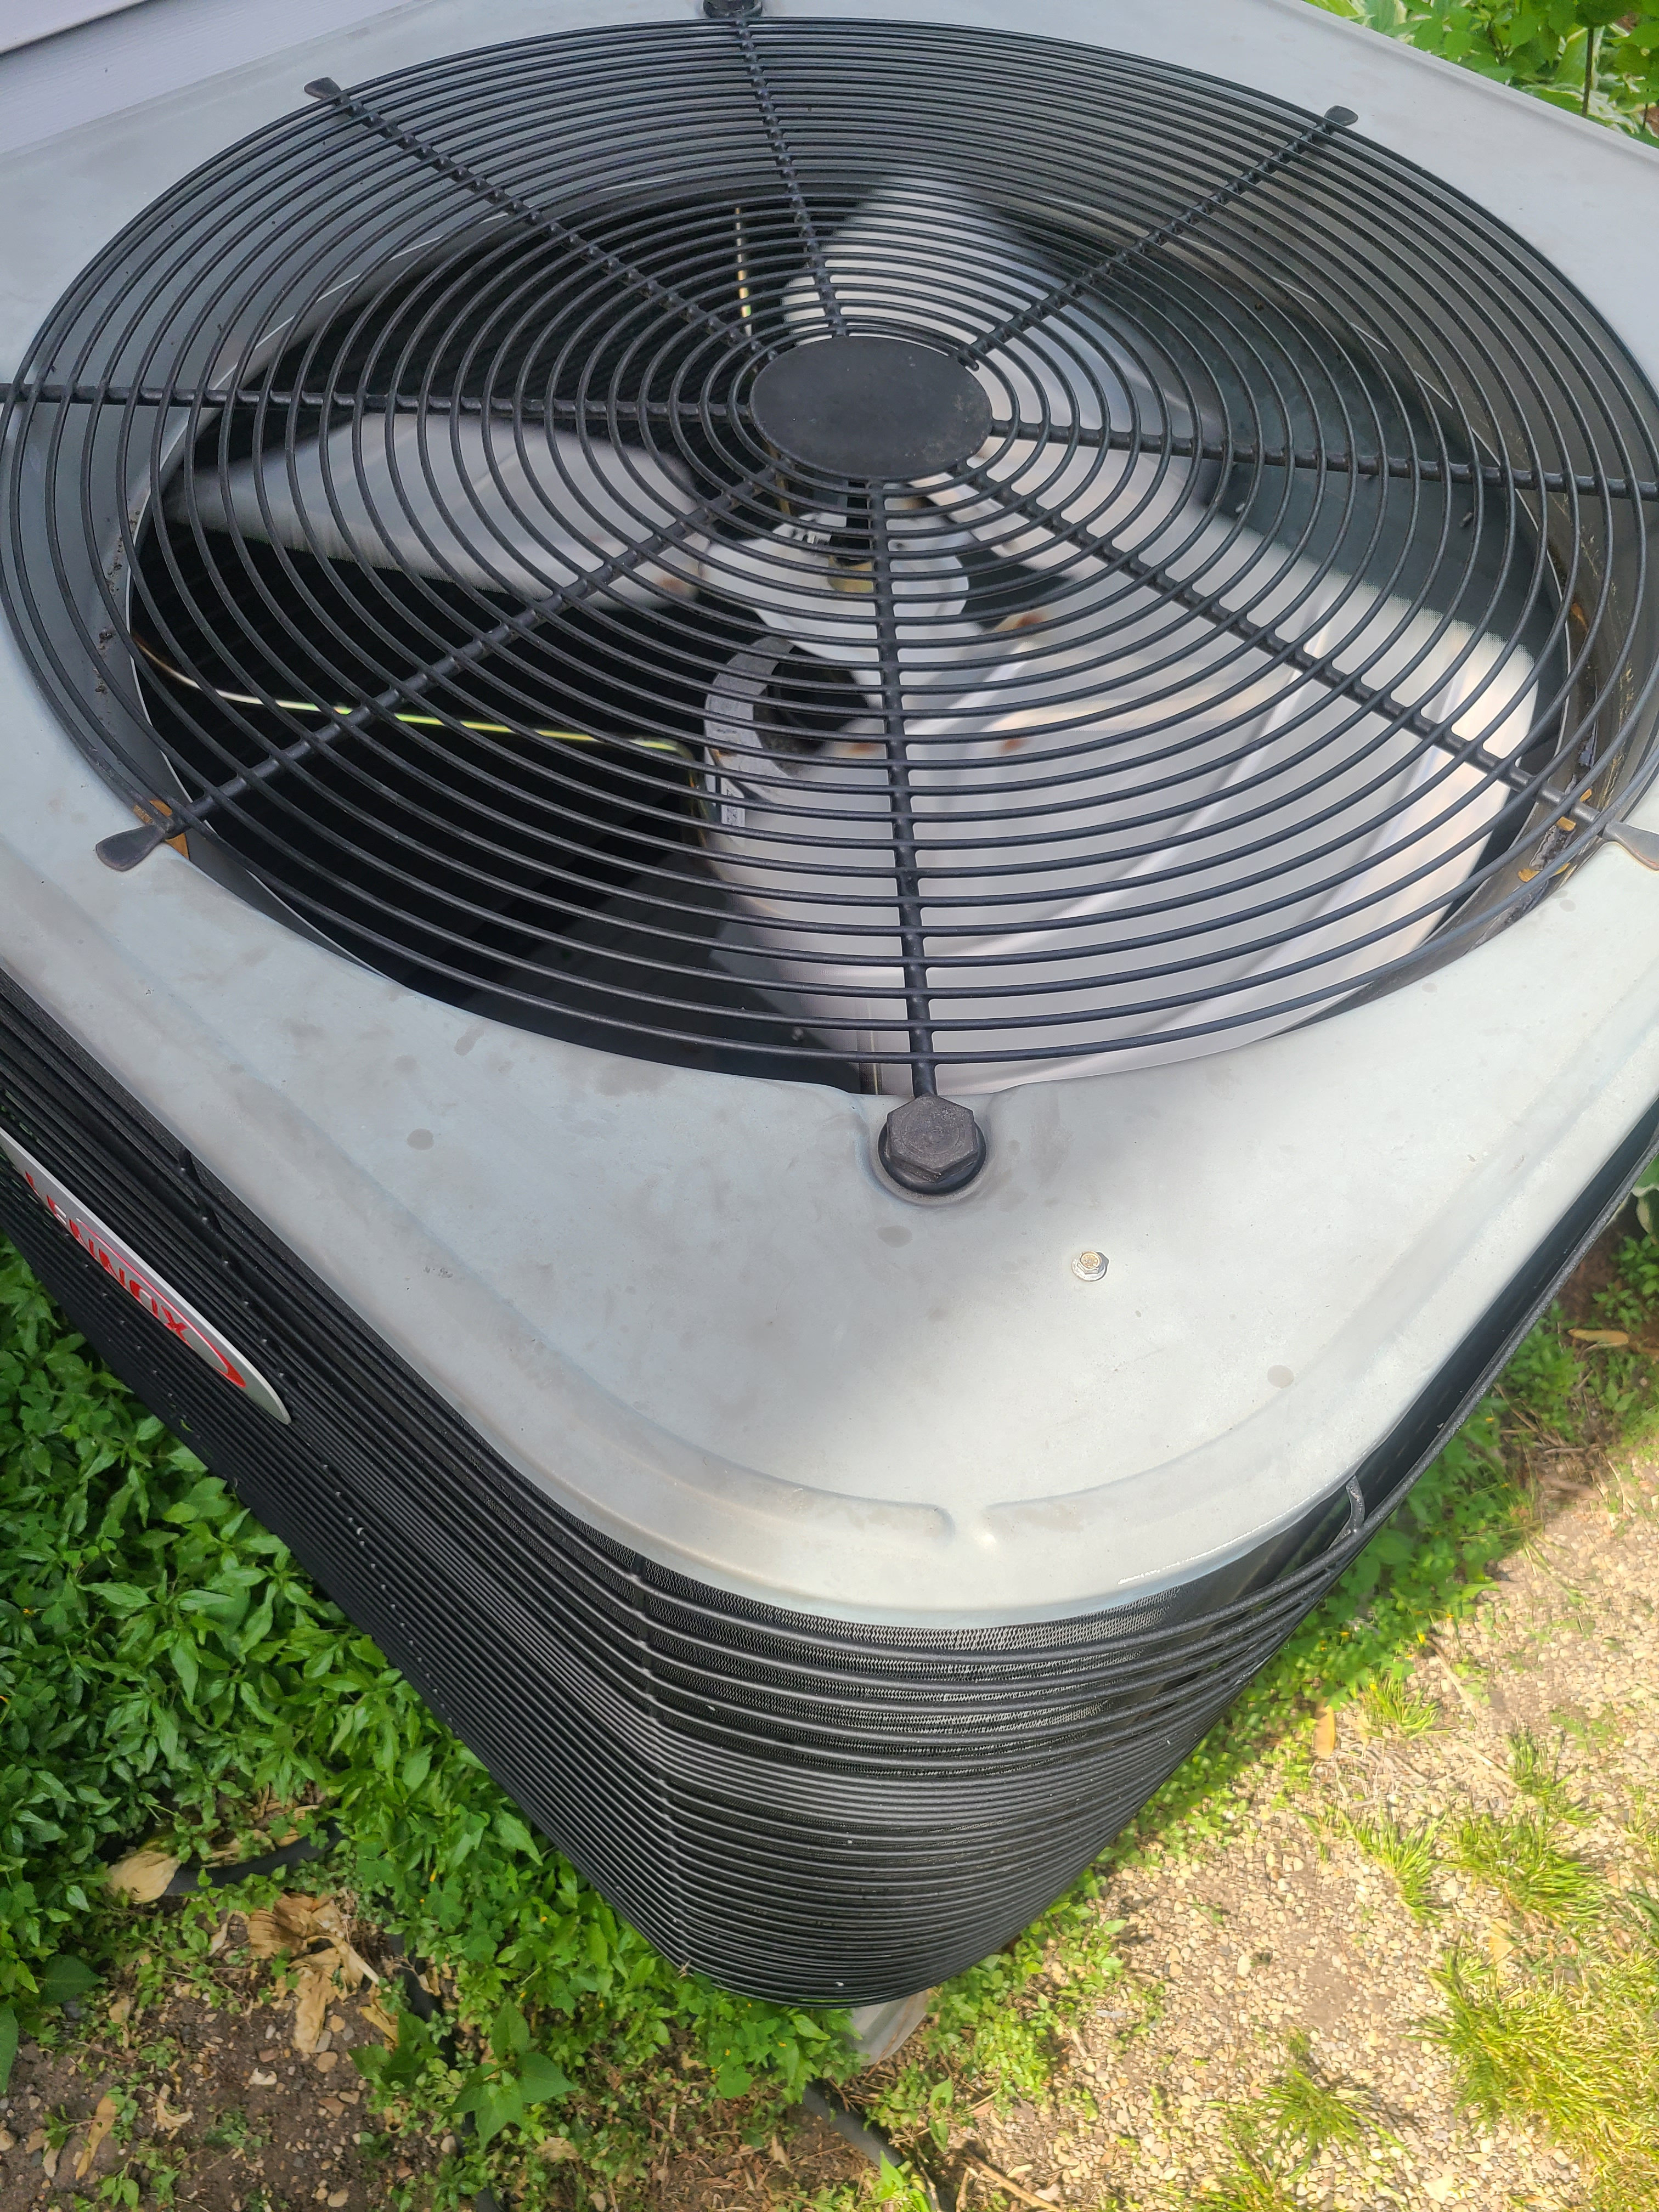 Stuck condenser fan motor. Oiled and freed up on Lennox AC